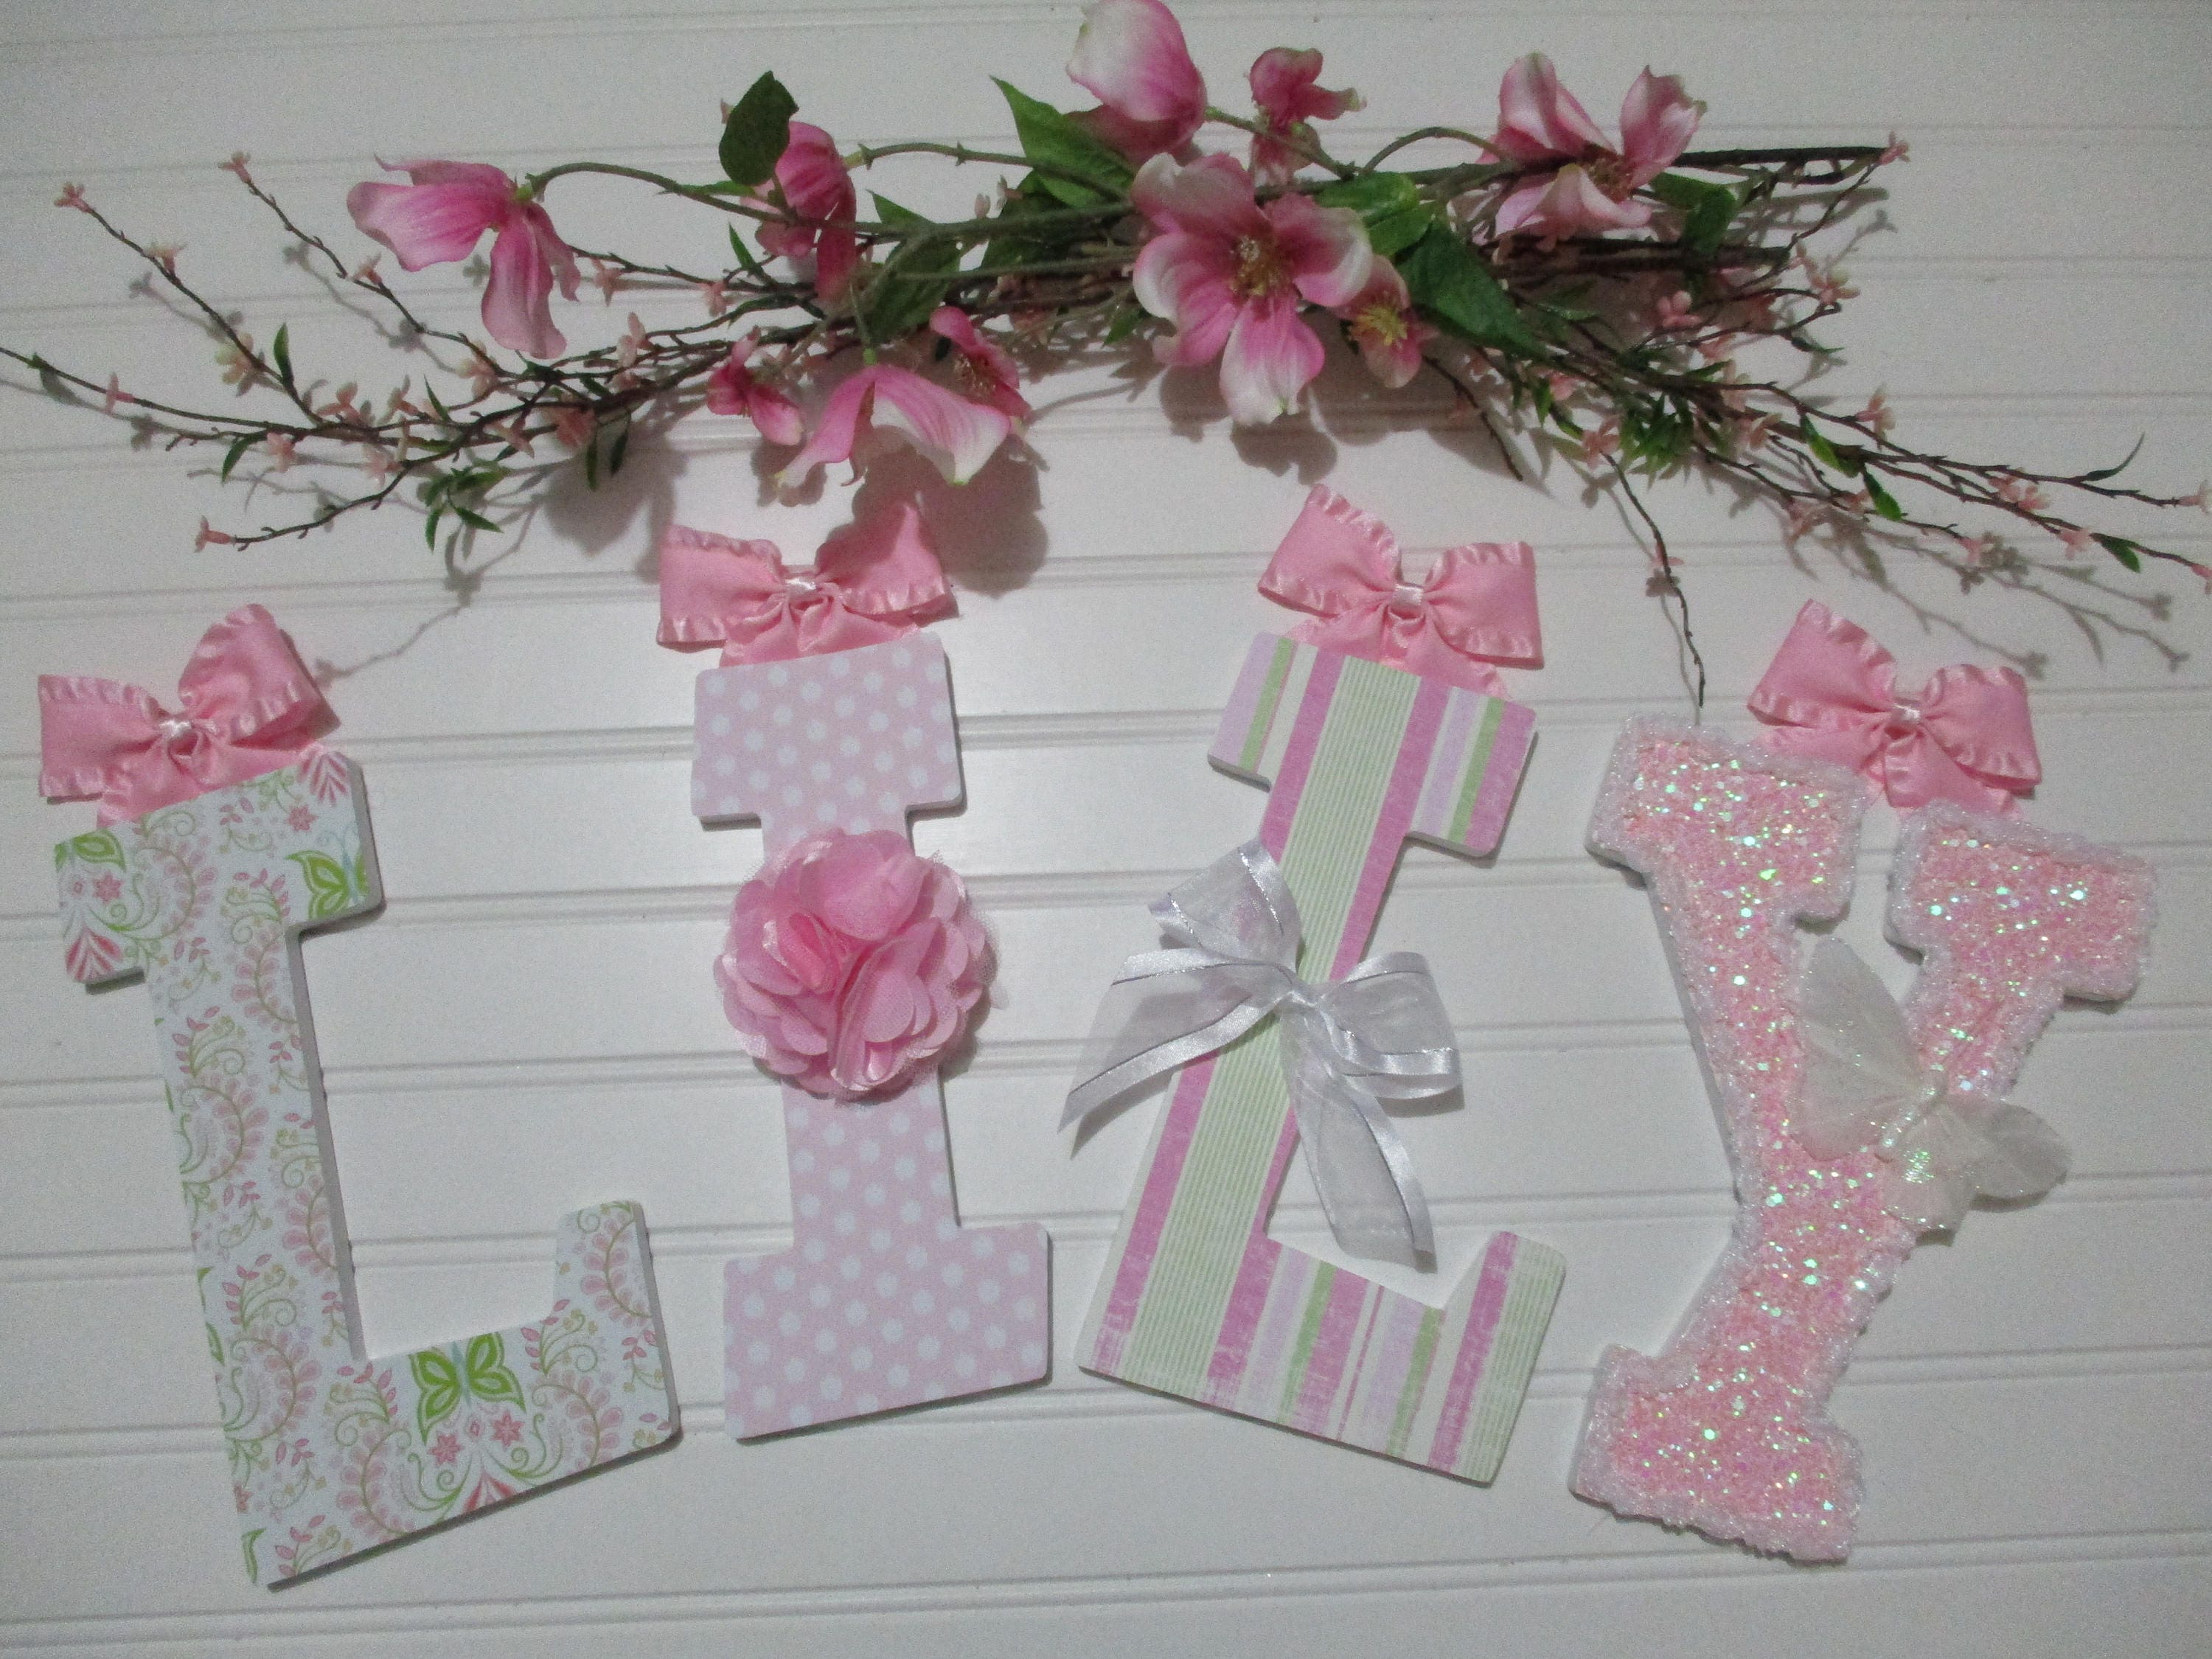 Lily 1200 Per Letter 8 12 Pink Sparkly White Etsy